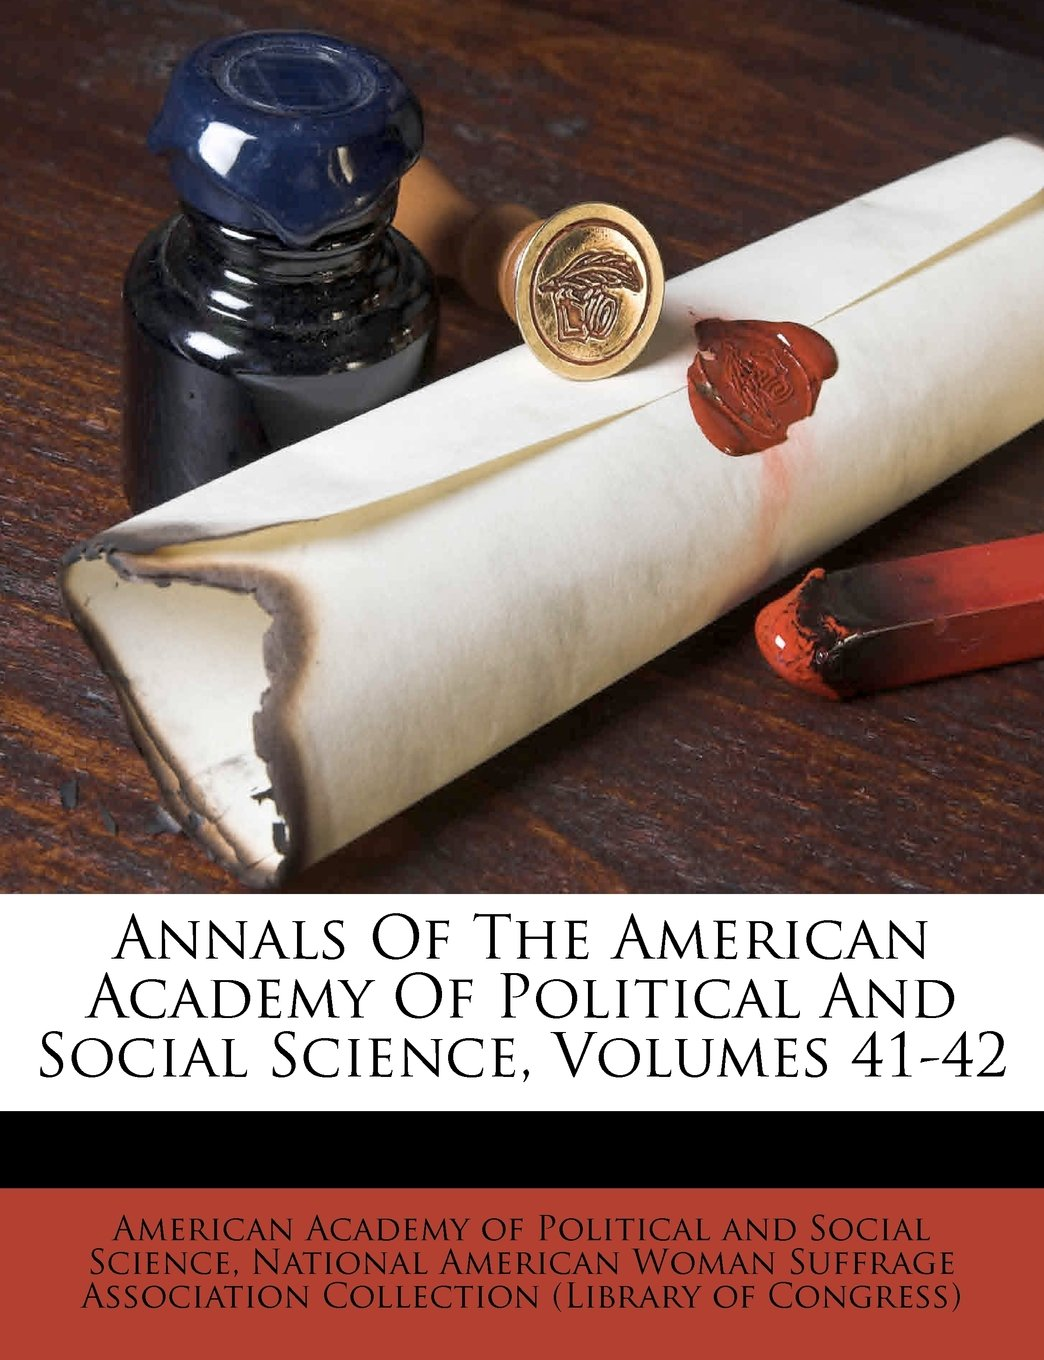 Annals Of The American Academy Of Political And Social Science, Volumes 41-42 ebook